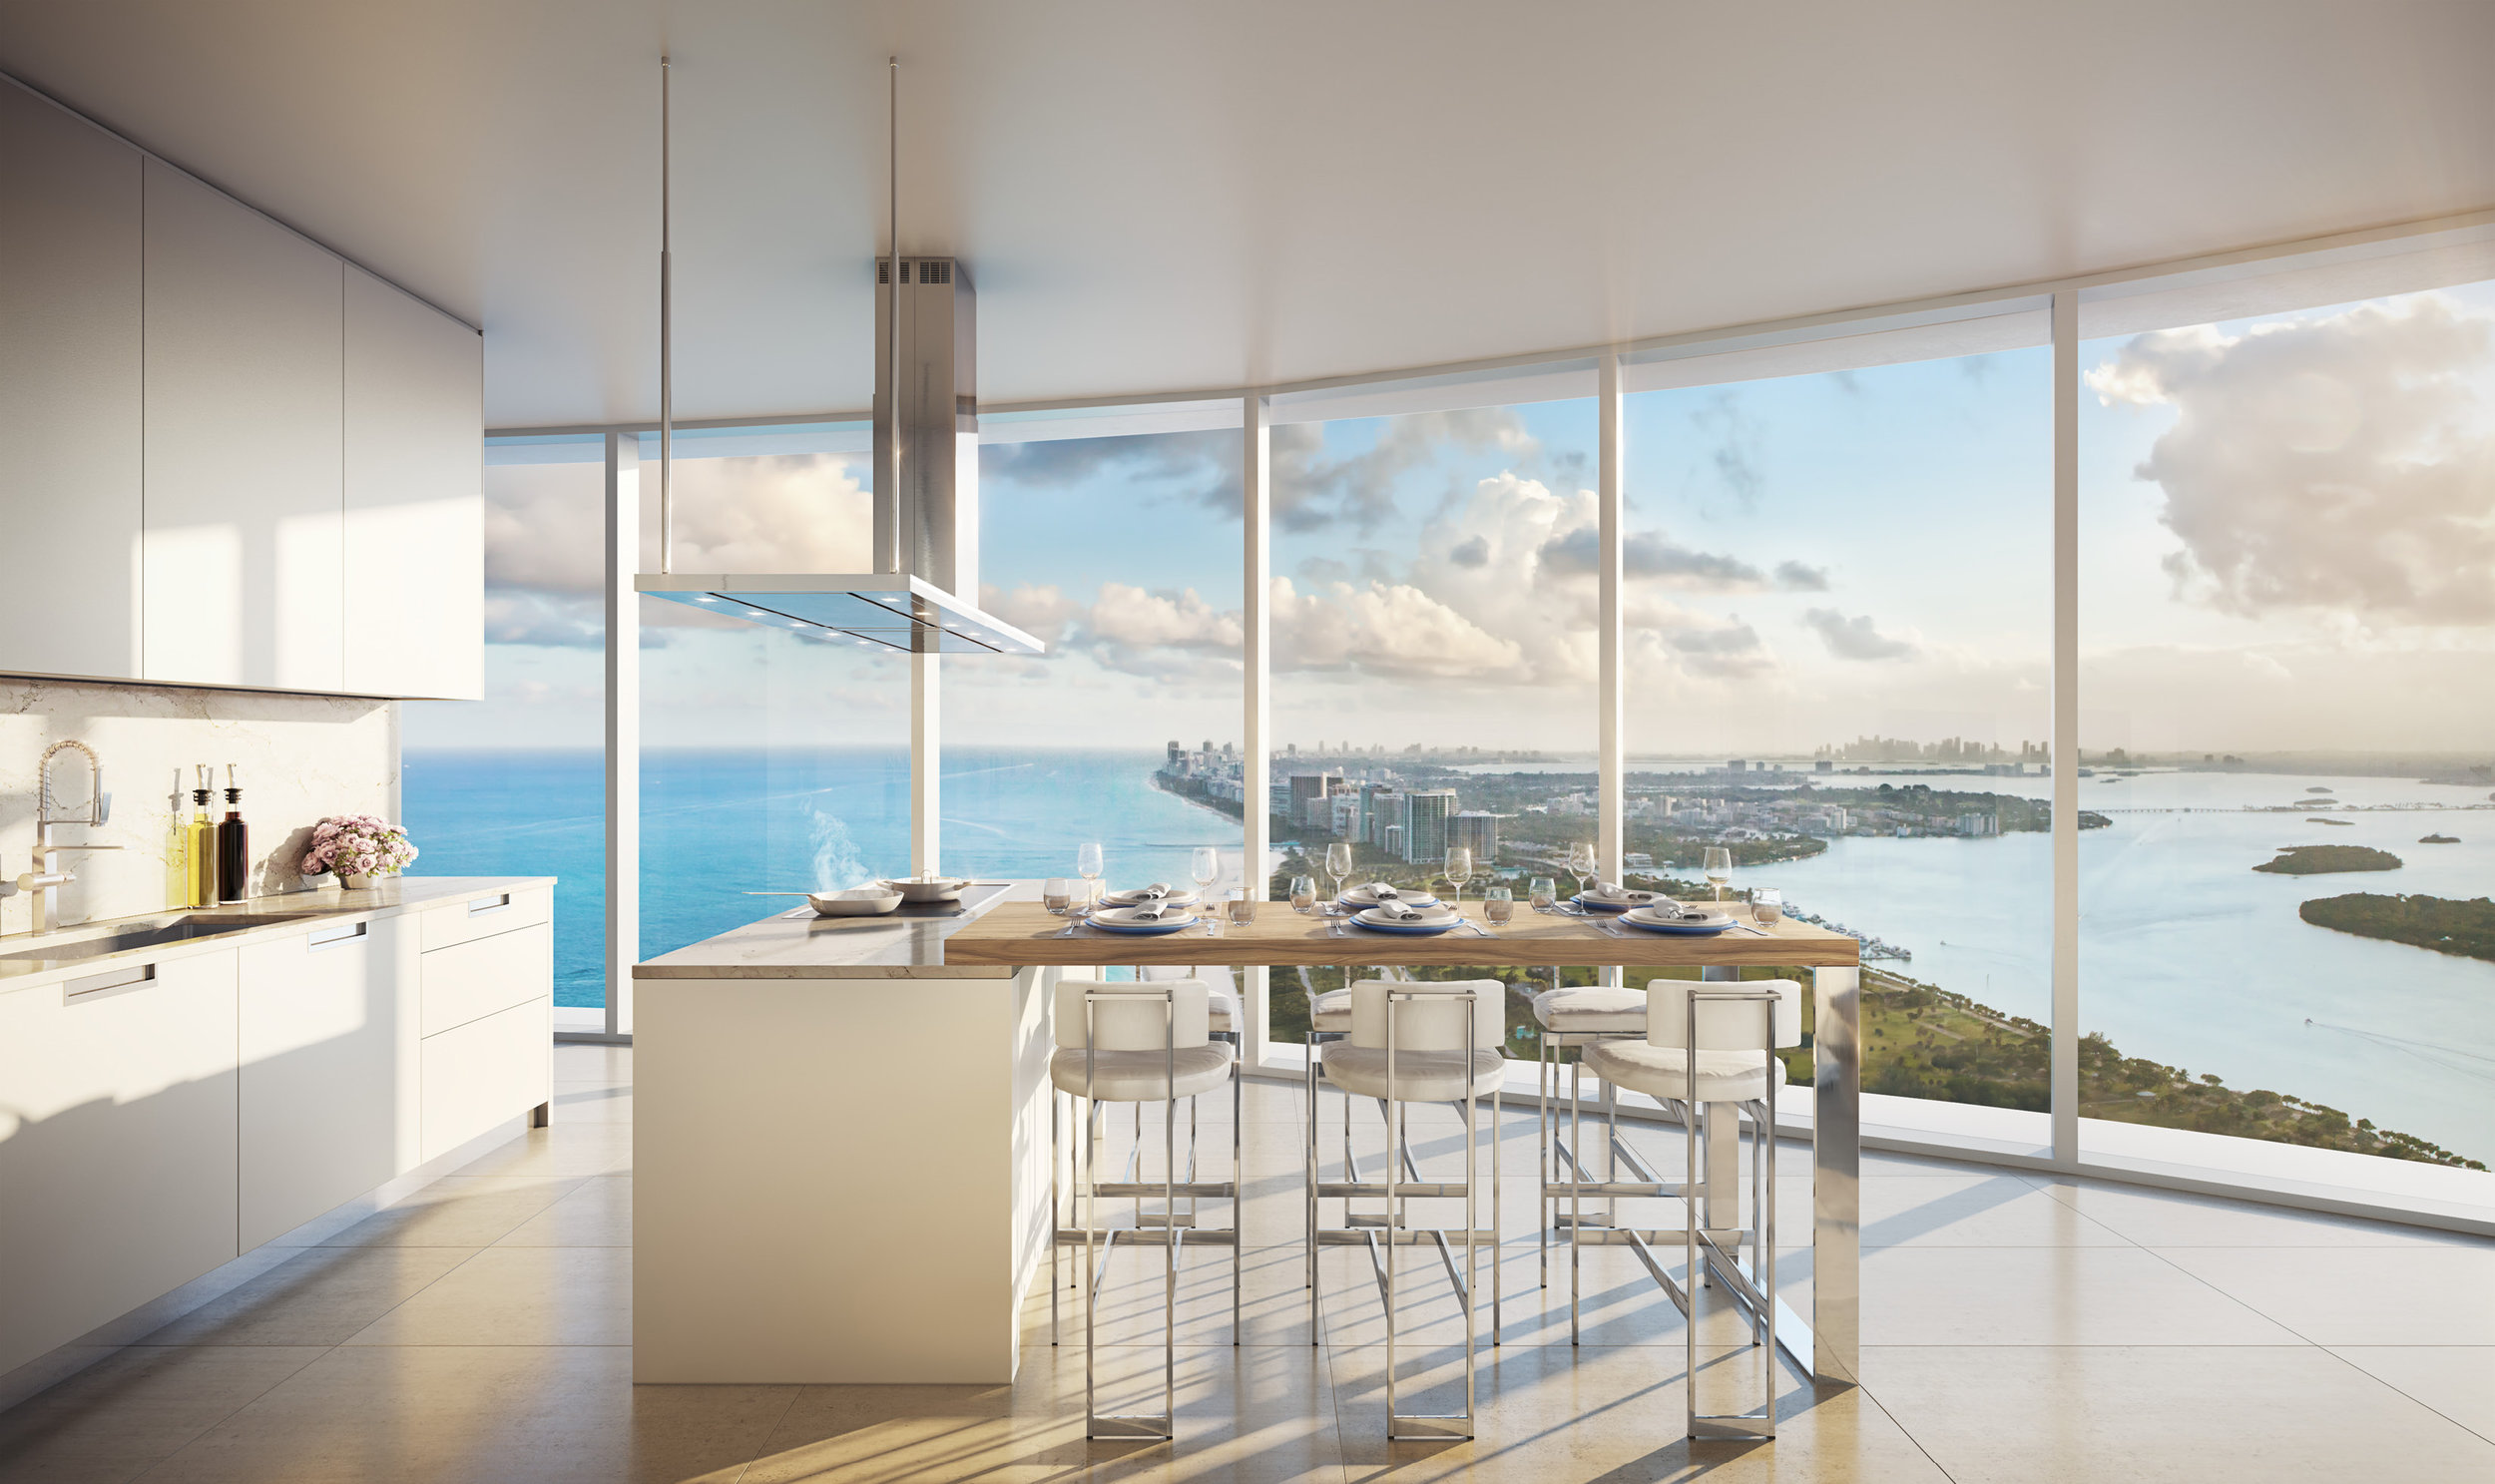 The Ritz-Carlton Residences, Sunny Isles Beach - 18 South Kitchen.jpg